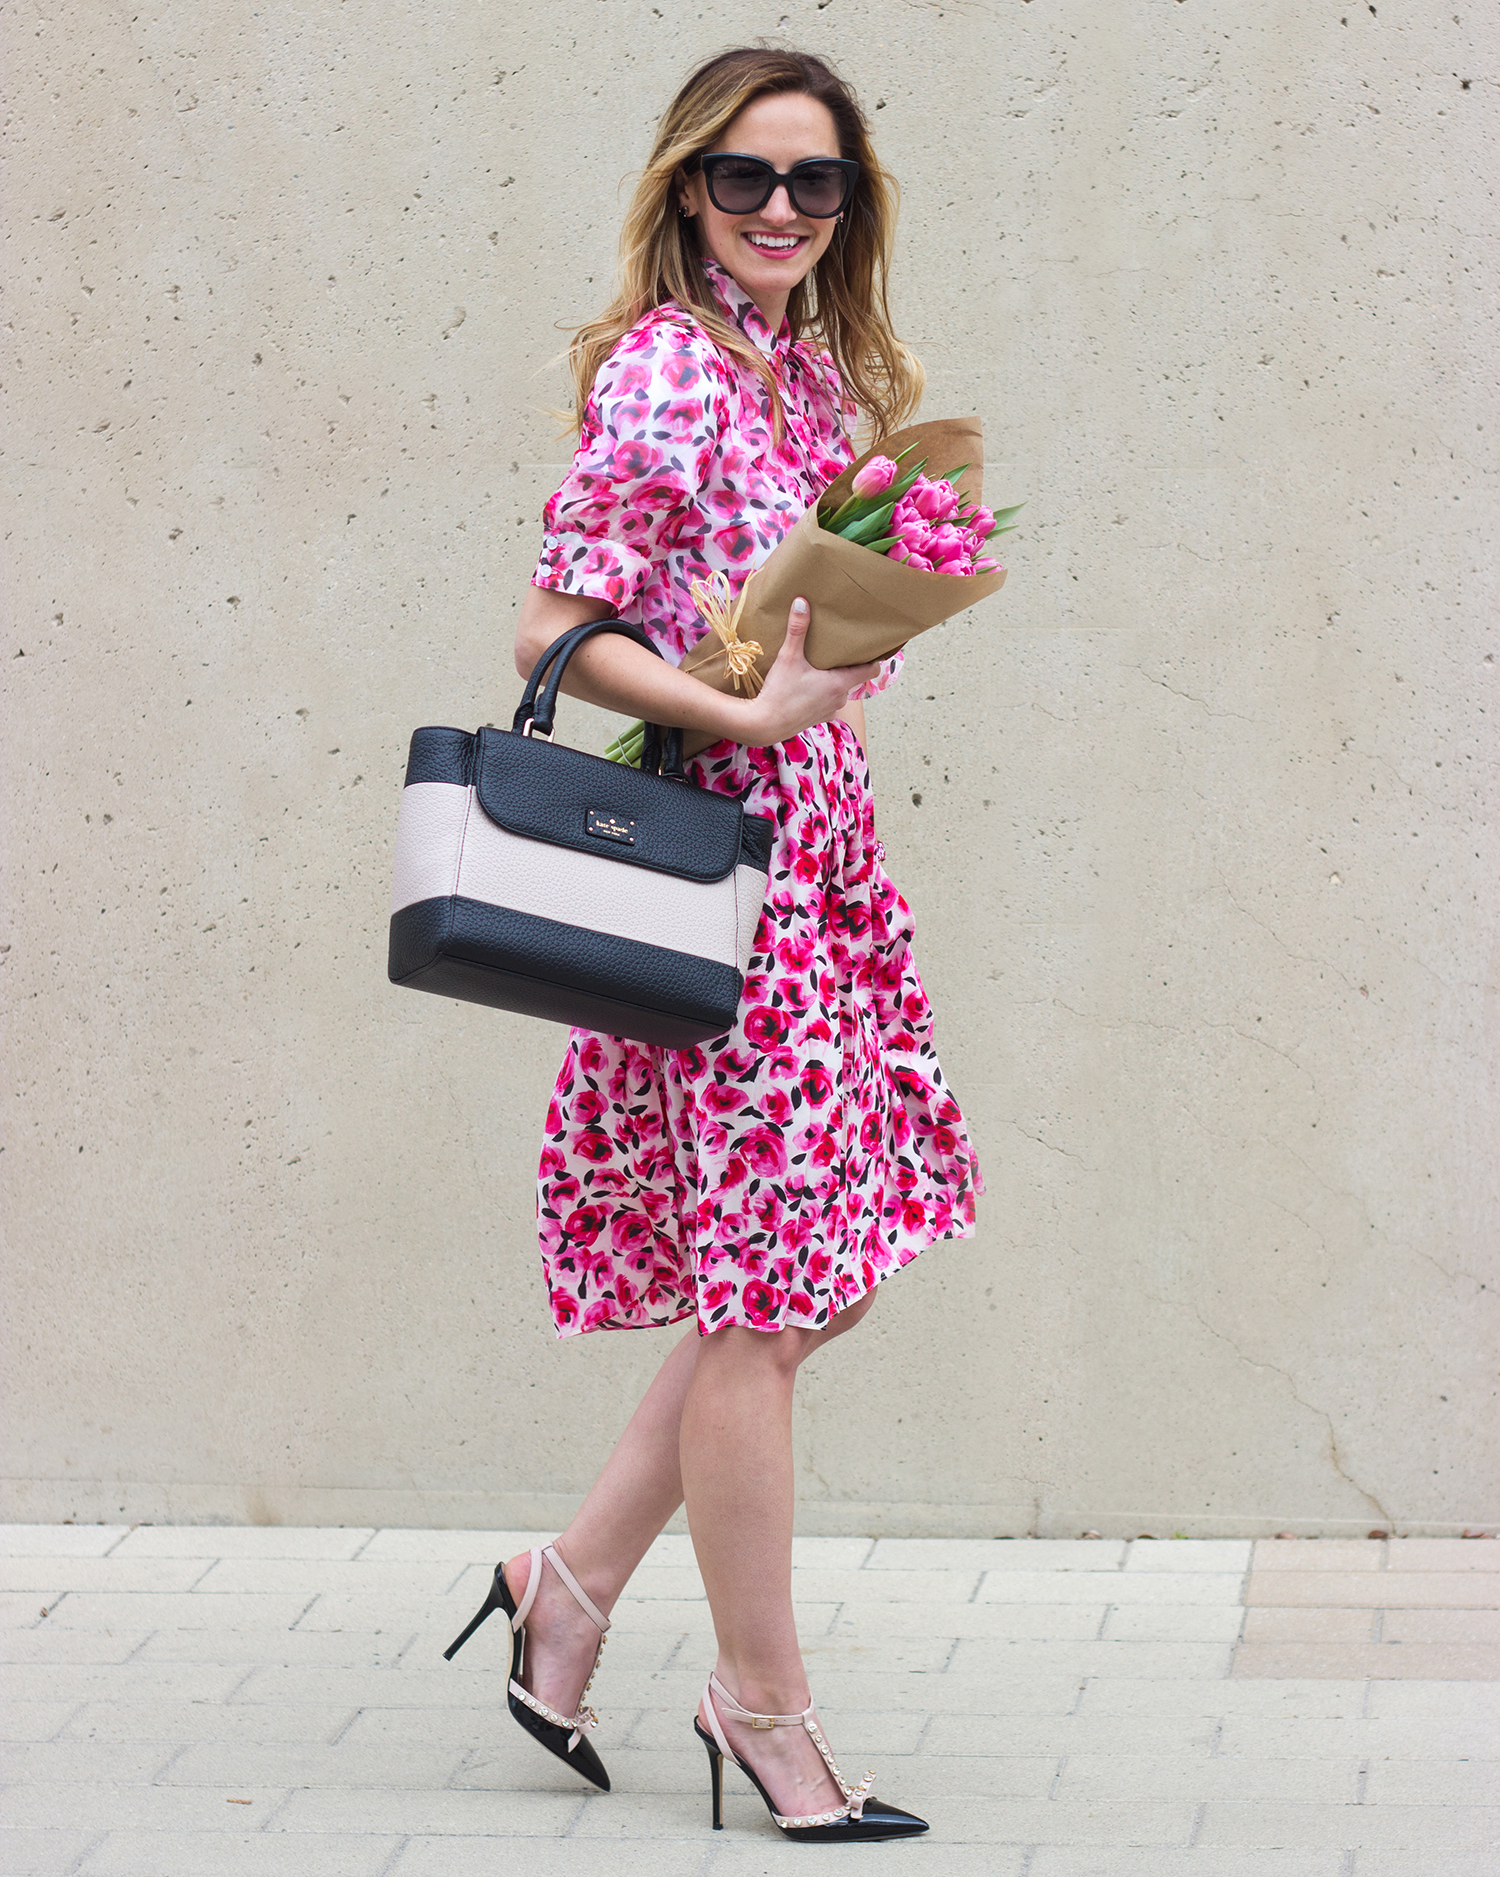 livvyland-blog-olivia-watson-austin-texas-fashion-blogger-kate-spade-broome-street-everyday-tee-white-rose-pleated-skirt-pink-black-spring-outfit-11